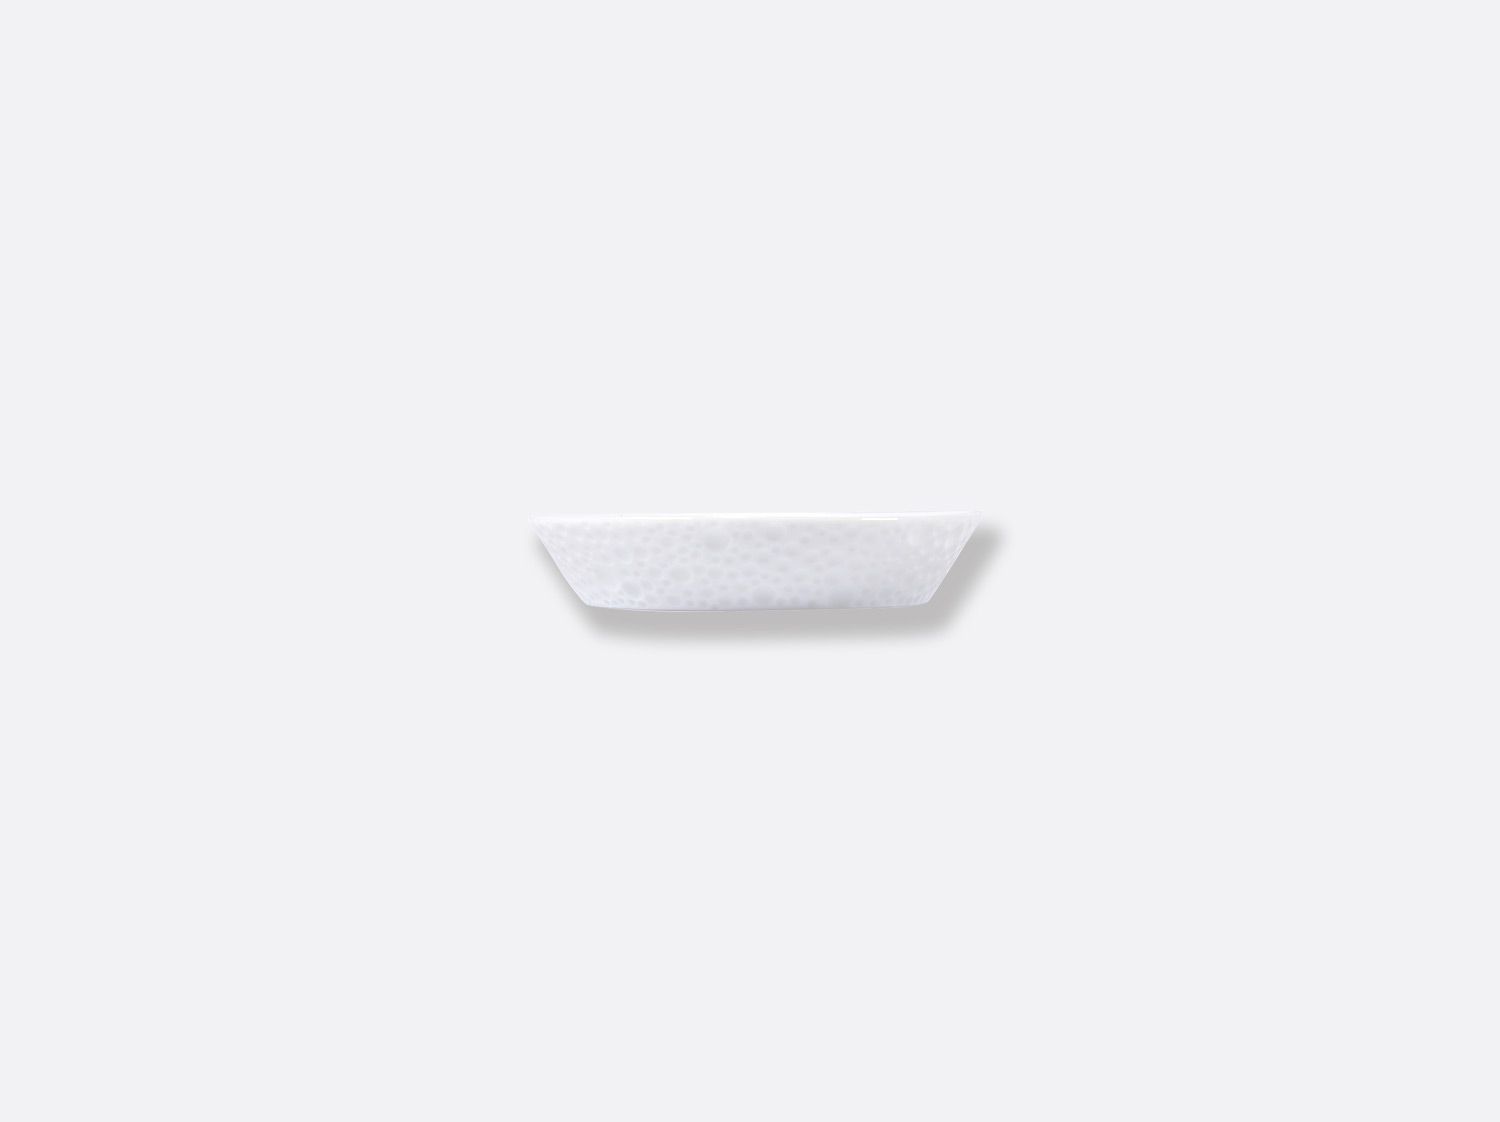 China バターディッシュ 8 cm of the collection ECUME BLANC AILE MAT | Bernardaud